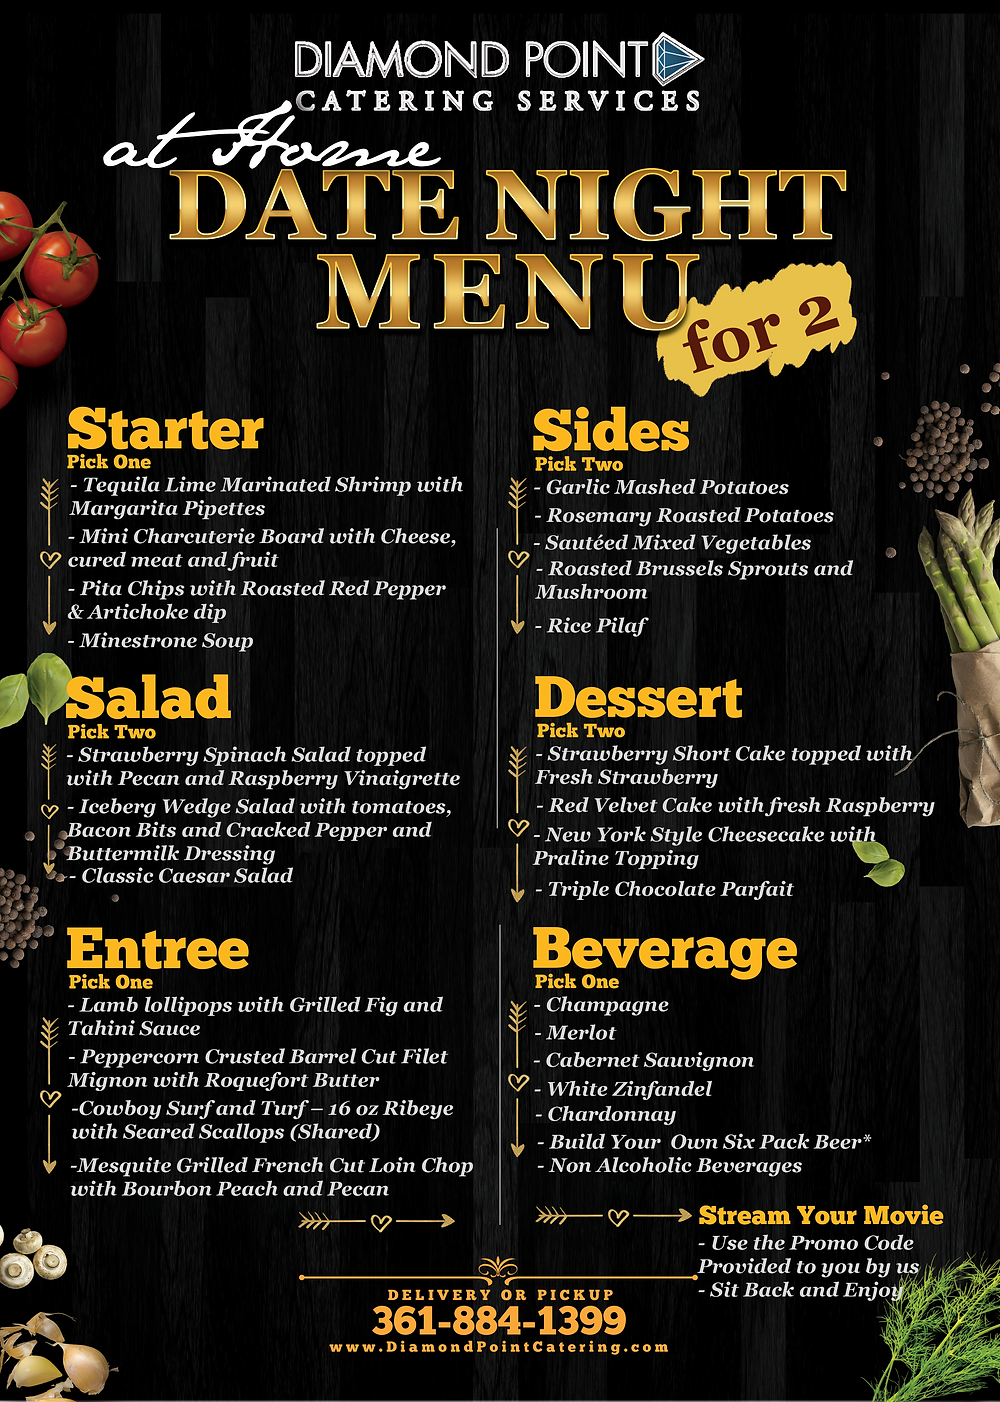 Diamond Point Catering's date night at home menu for two: includes a 4 course meal and a RedBox on Demand promo code.